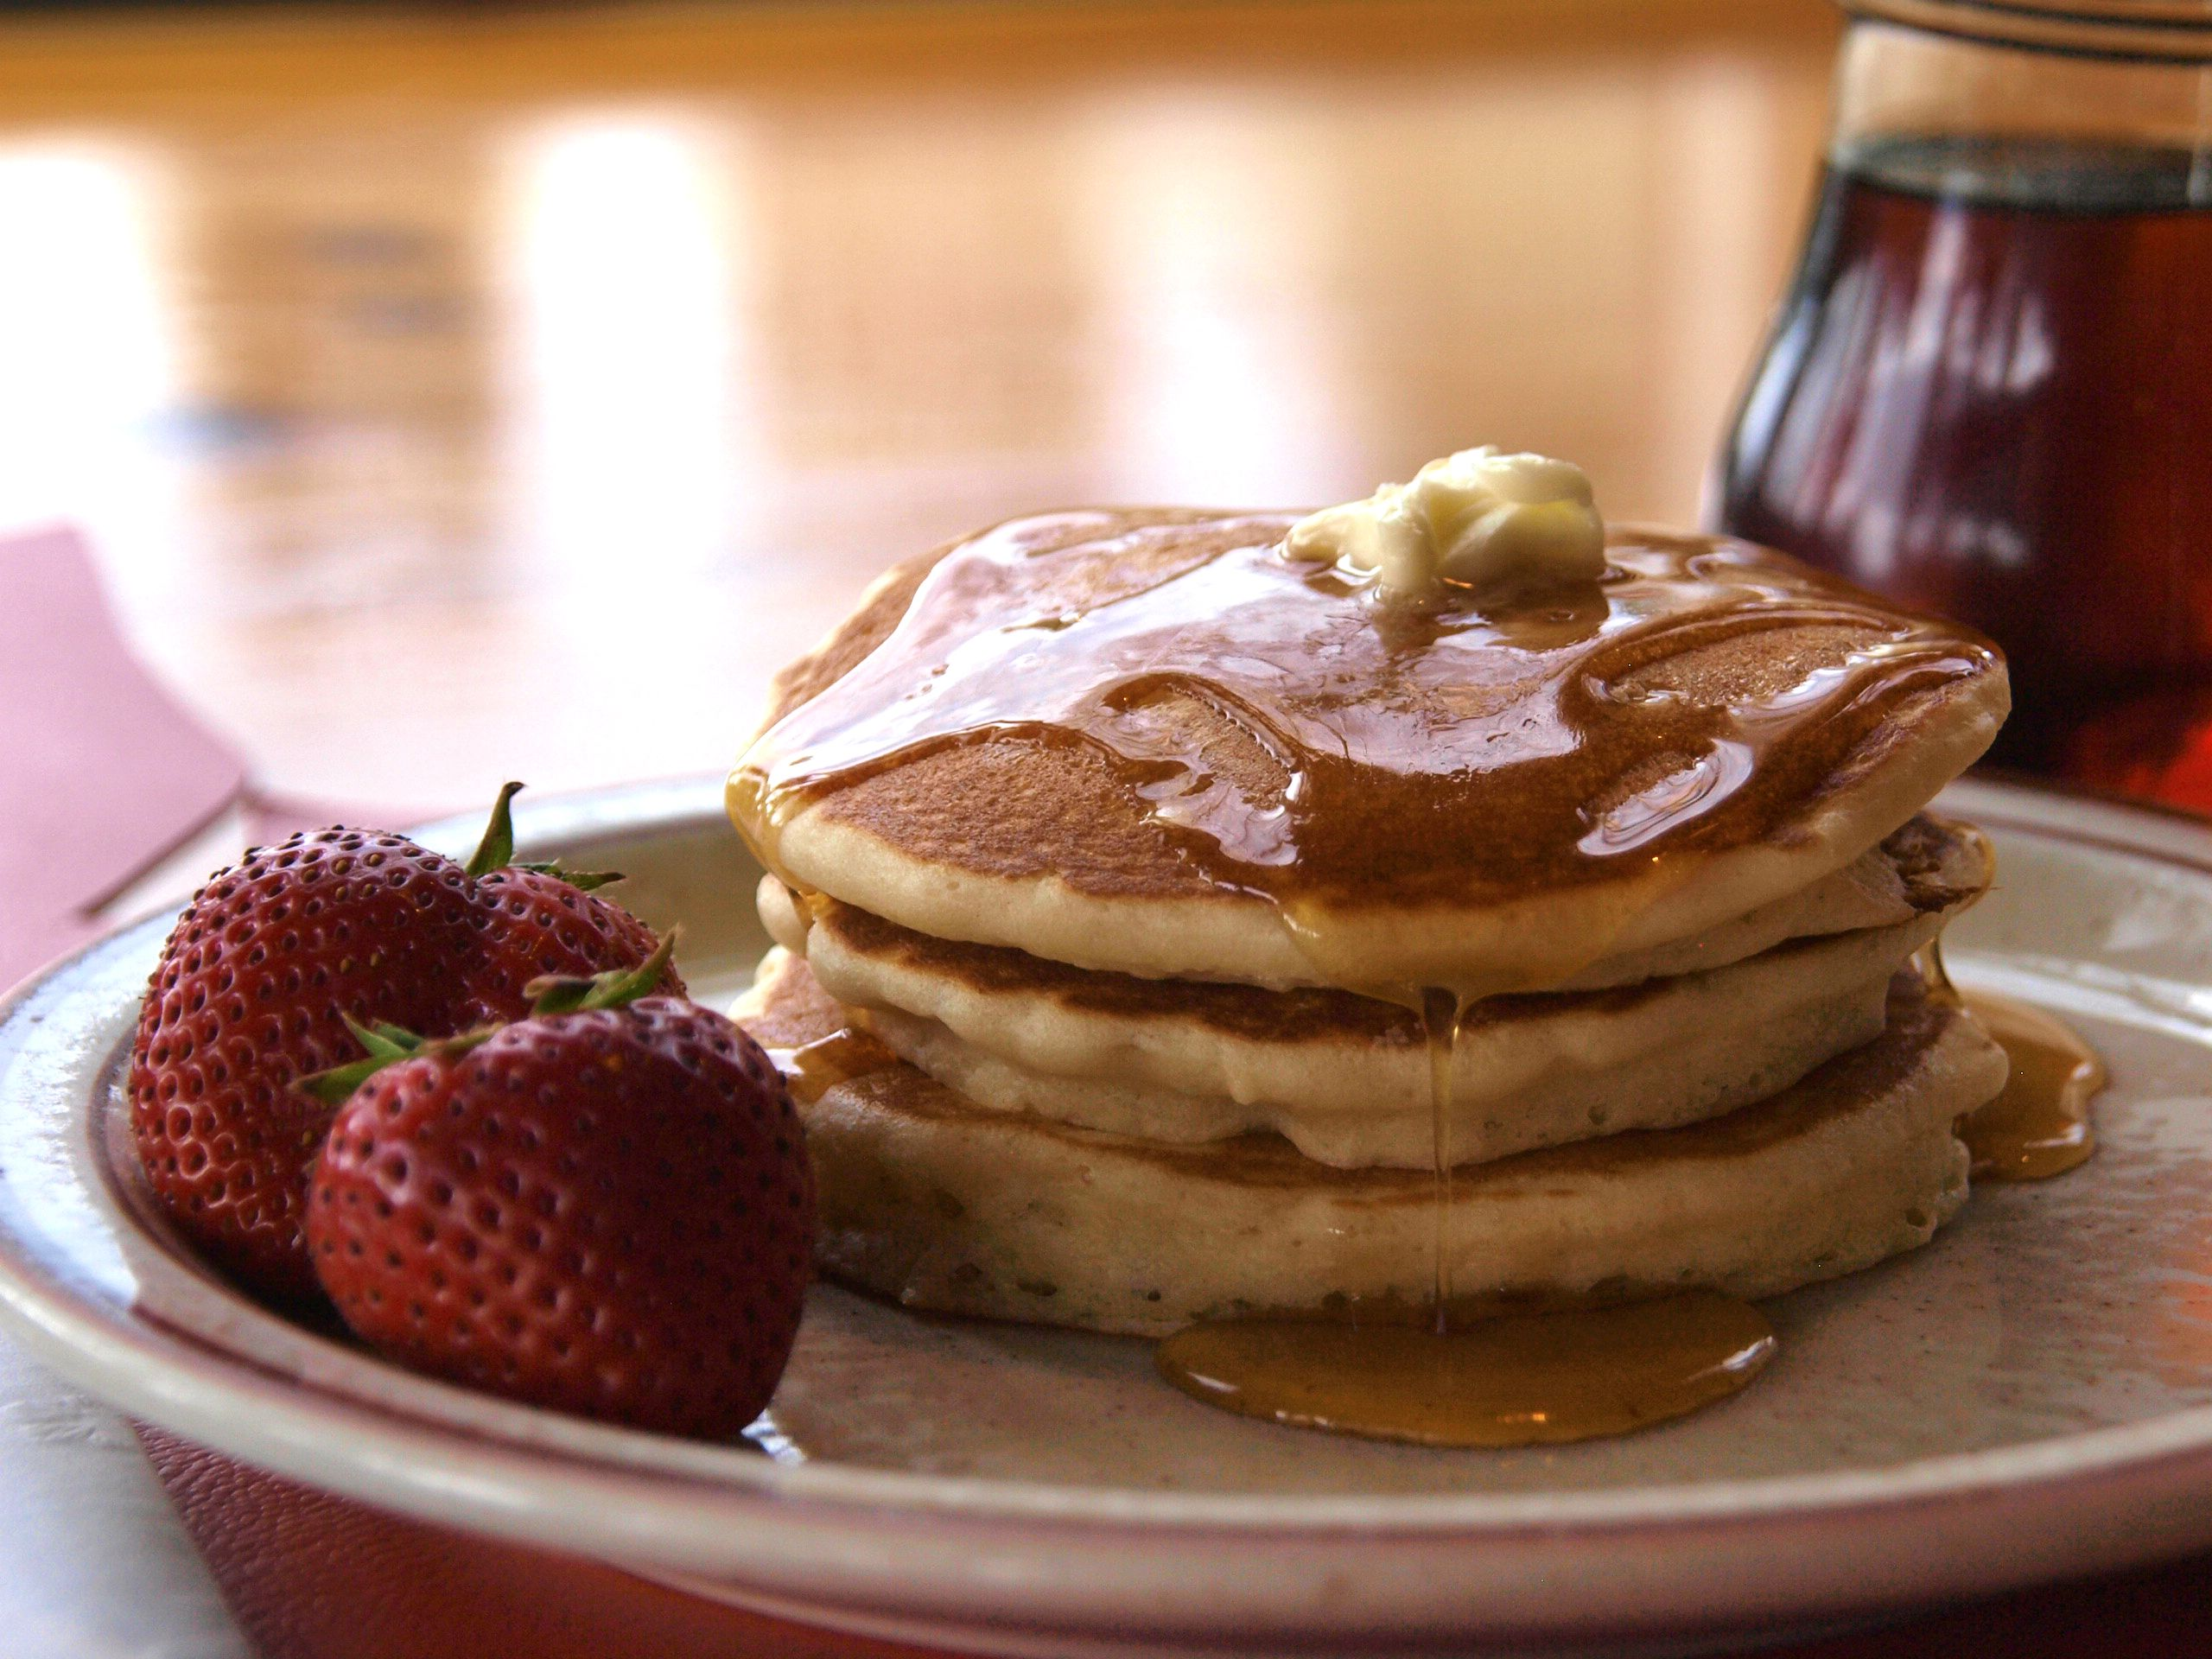 Mailorder Pancake Mixes And Maple Syrup Food Network Recipes Food Syrup Recipe